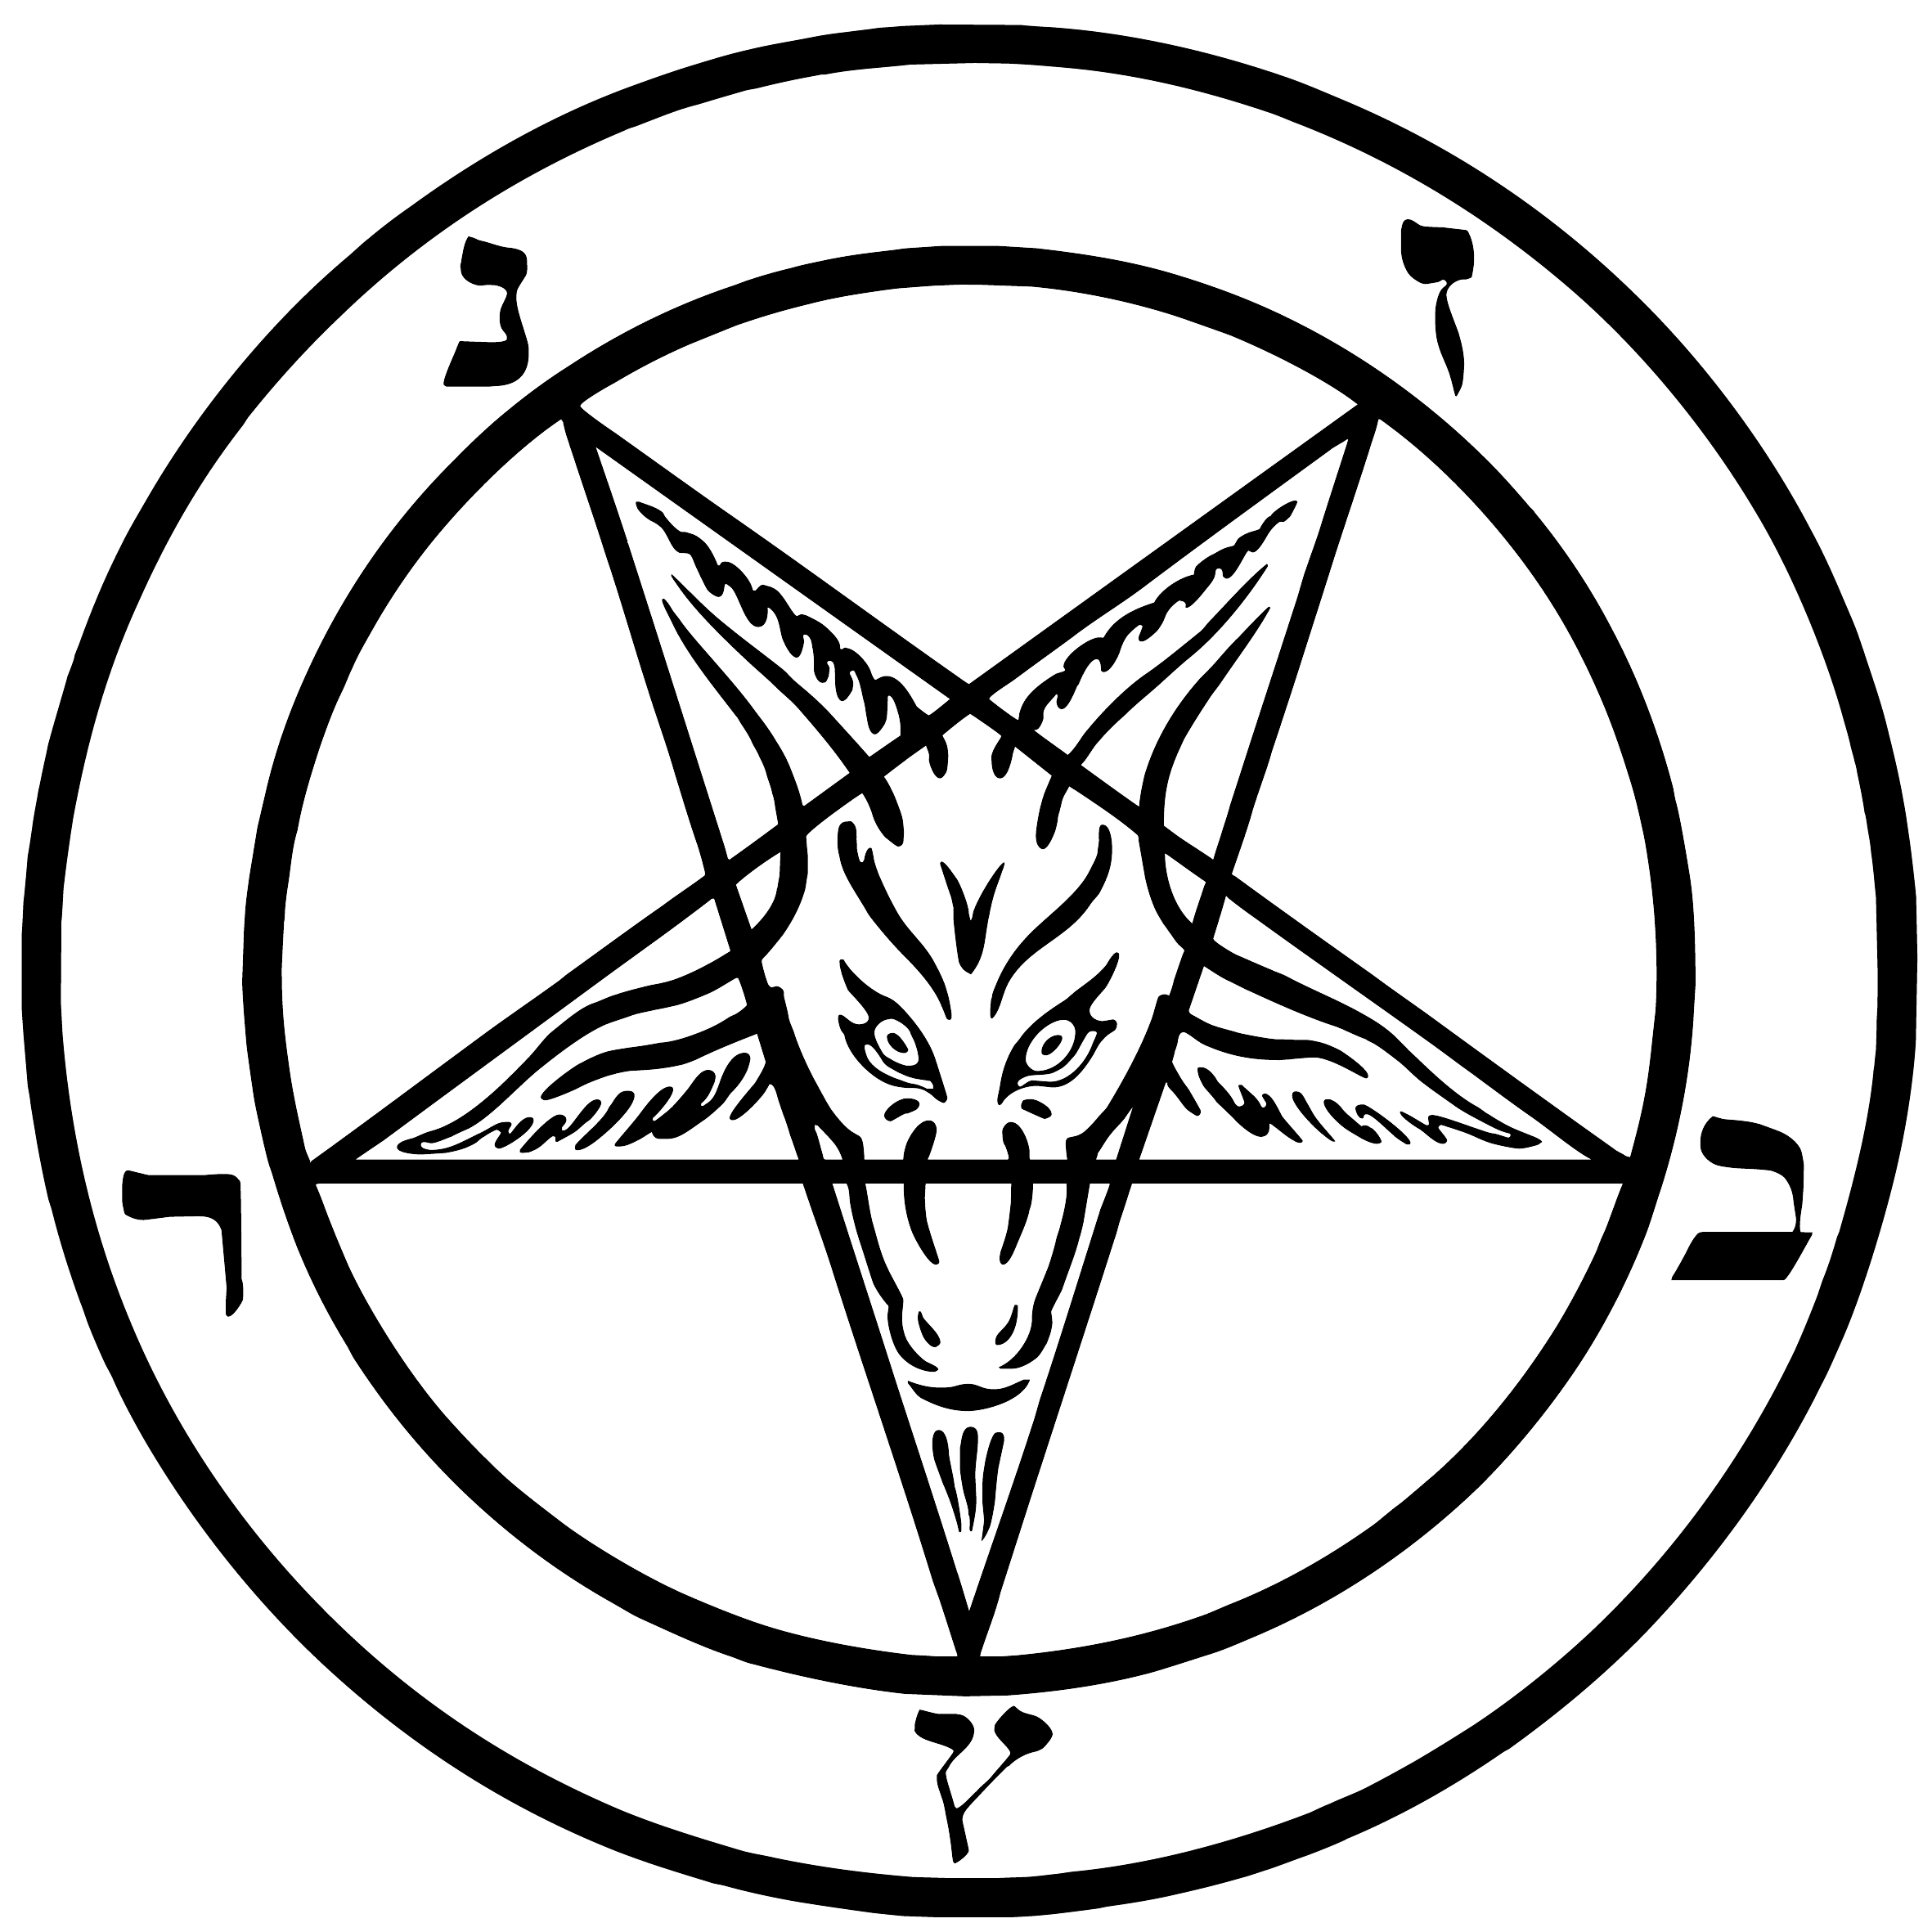 image free download Baphomet drawing easy. A satanist on why